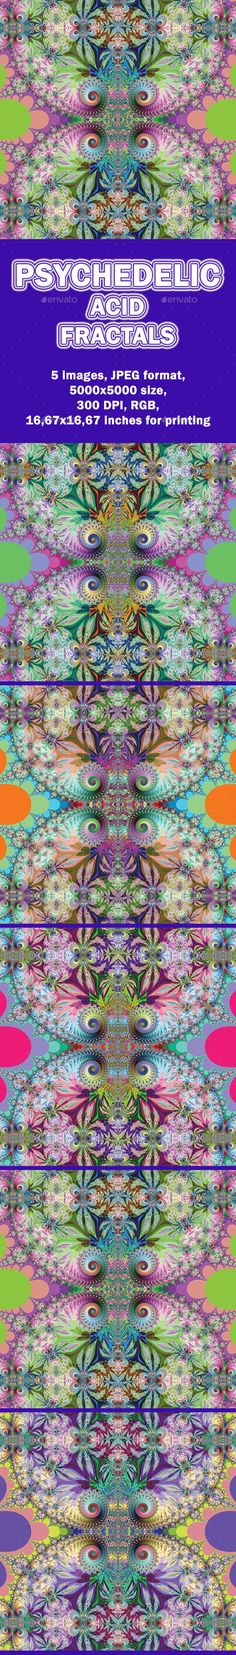 This set contains 5 abstract backgrounds with acid psychedelic fractals. You can use it as backgrounds, prints, covers or anywhere